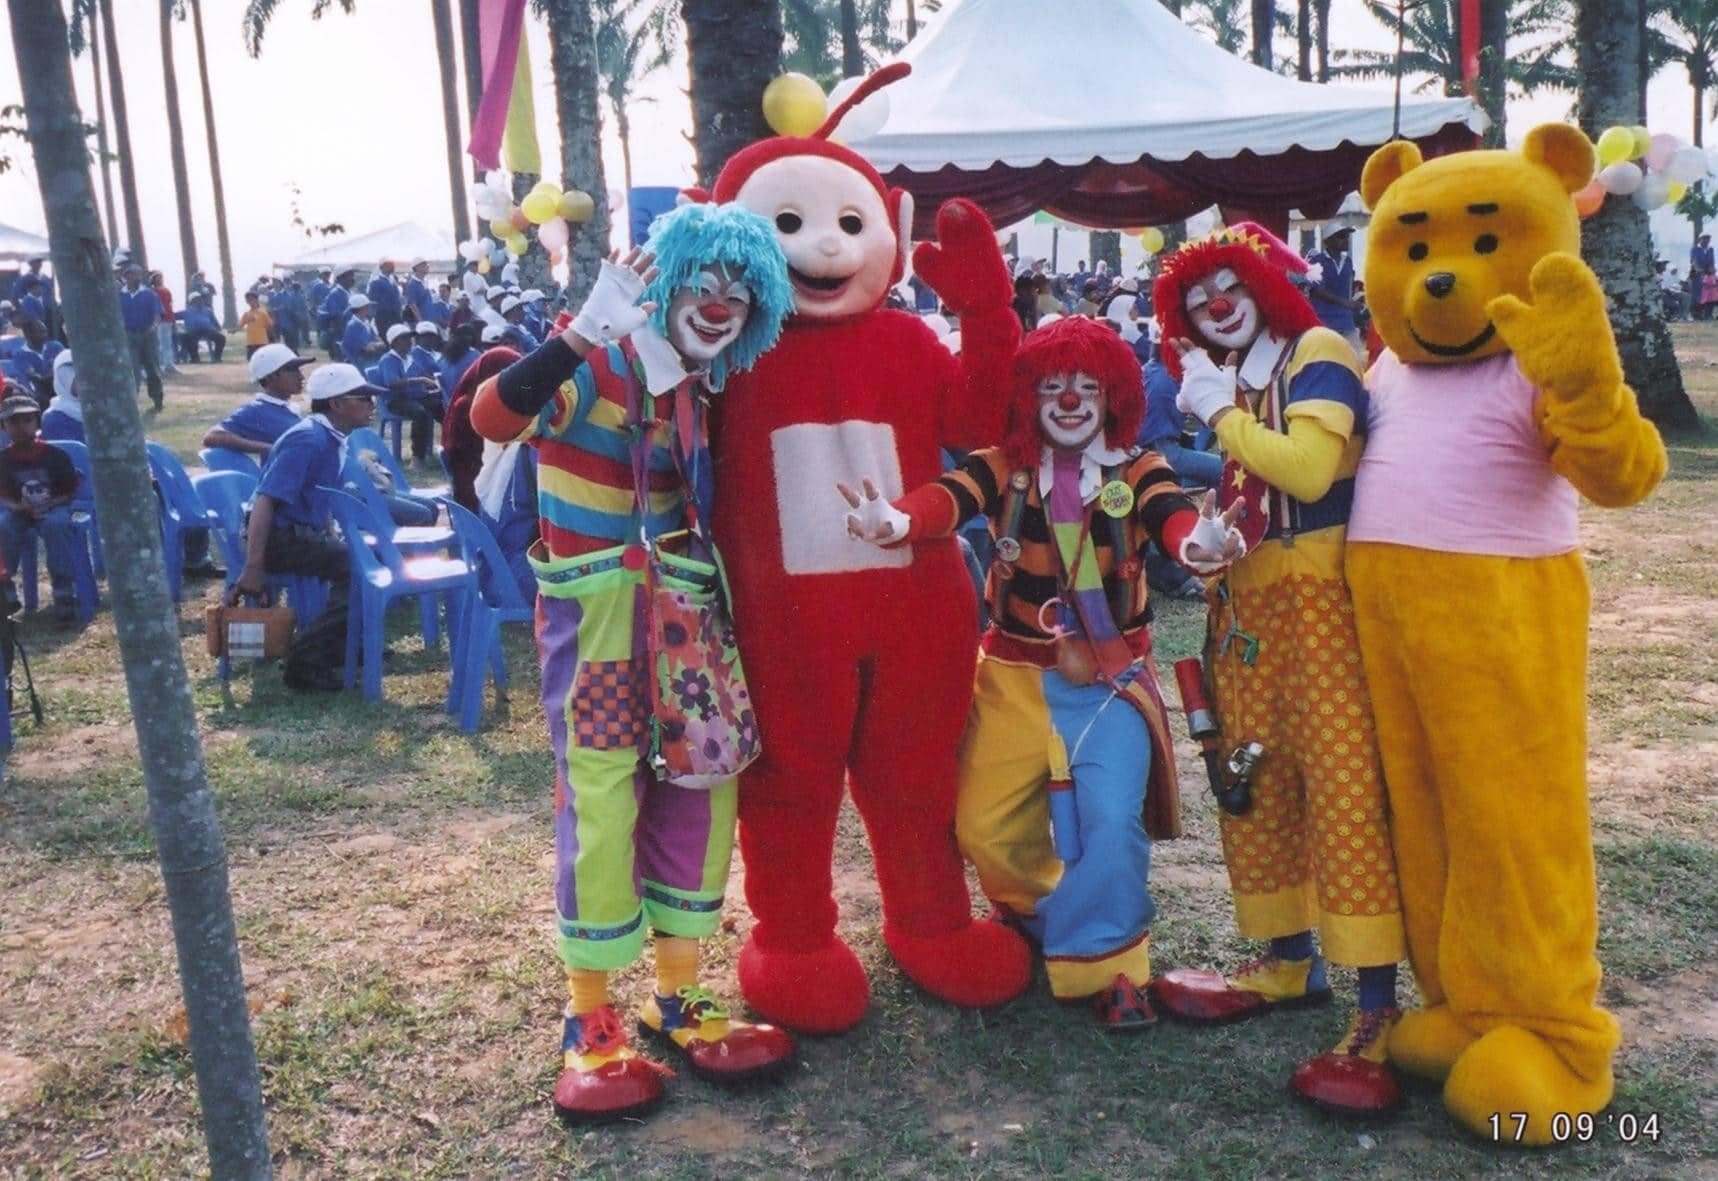 Mascots And Clowns at family day